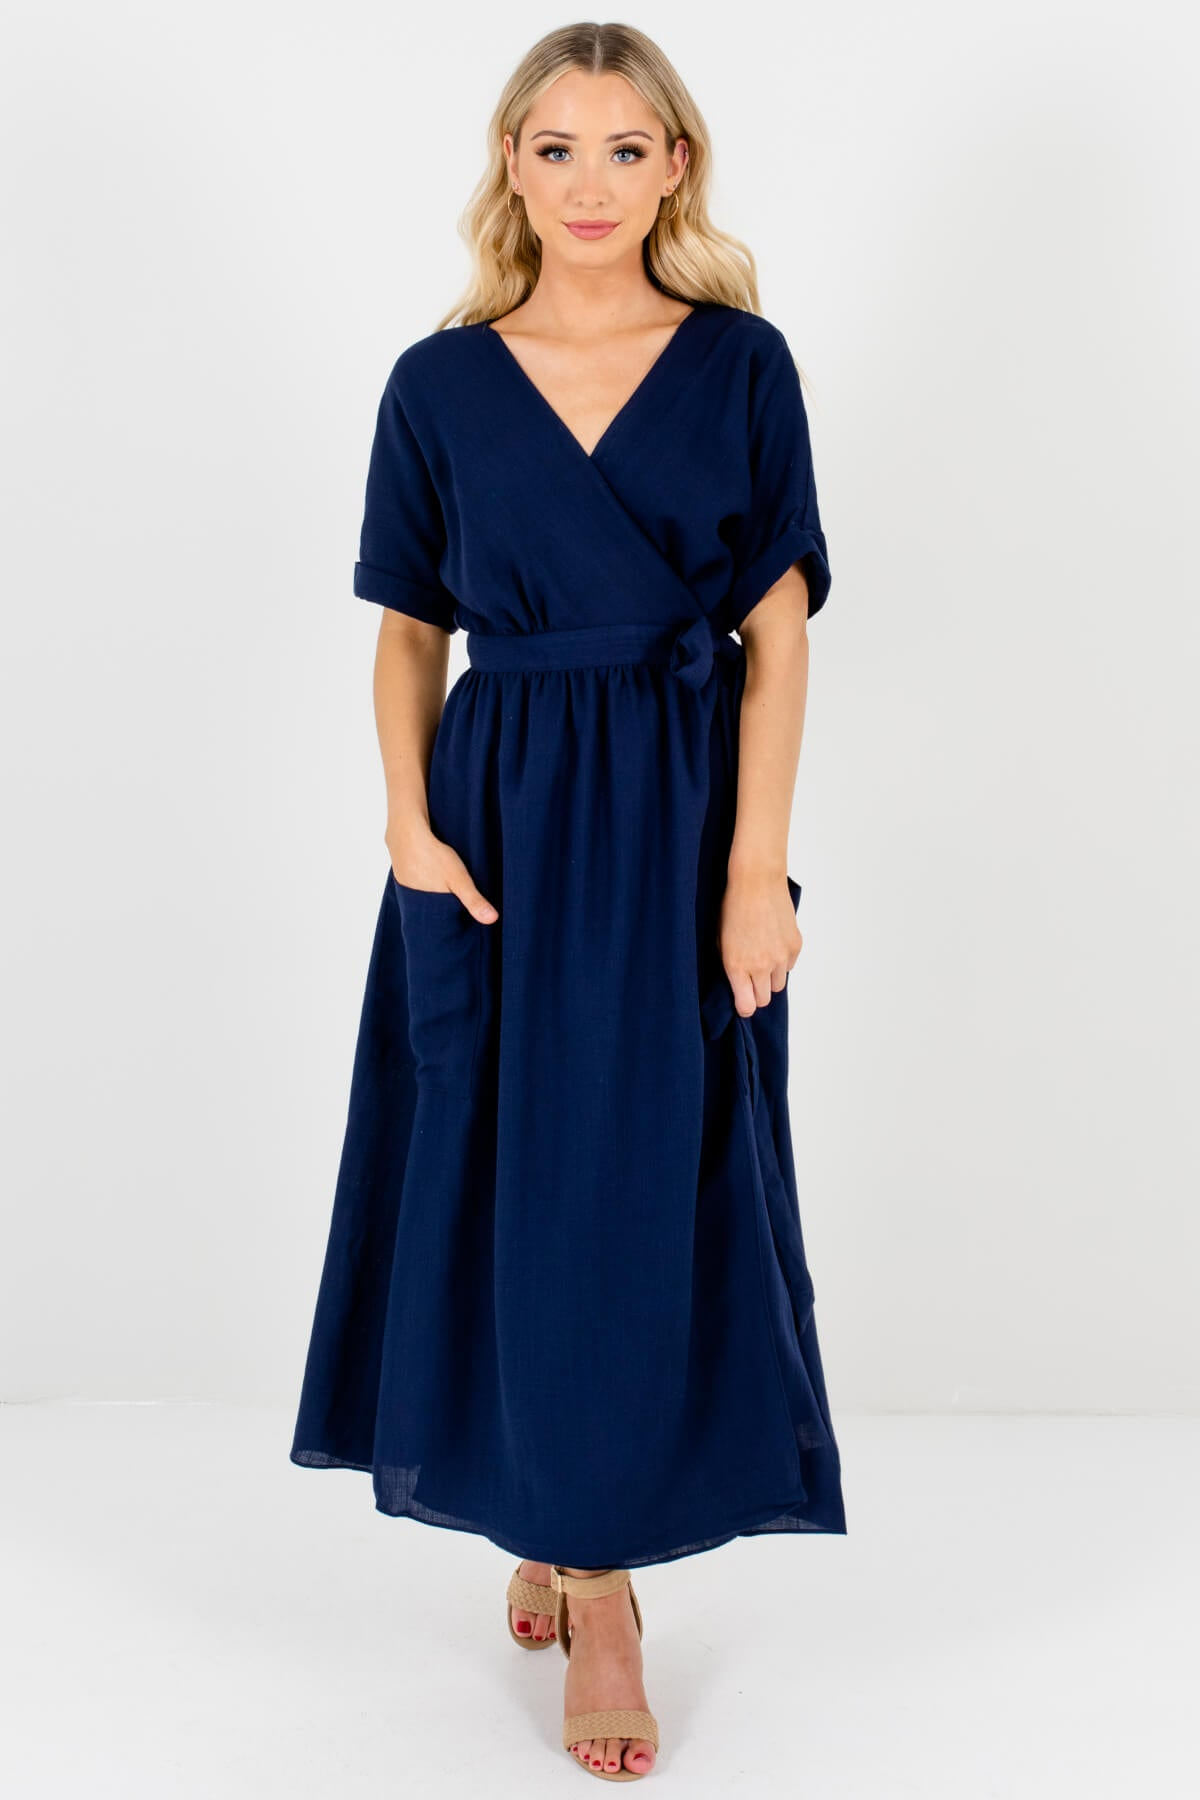 Navy Blue Wrap Maxi Dresses with Pockets Affordable Online Boutique